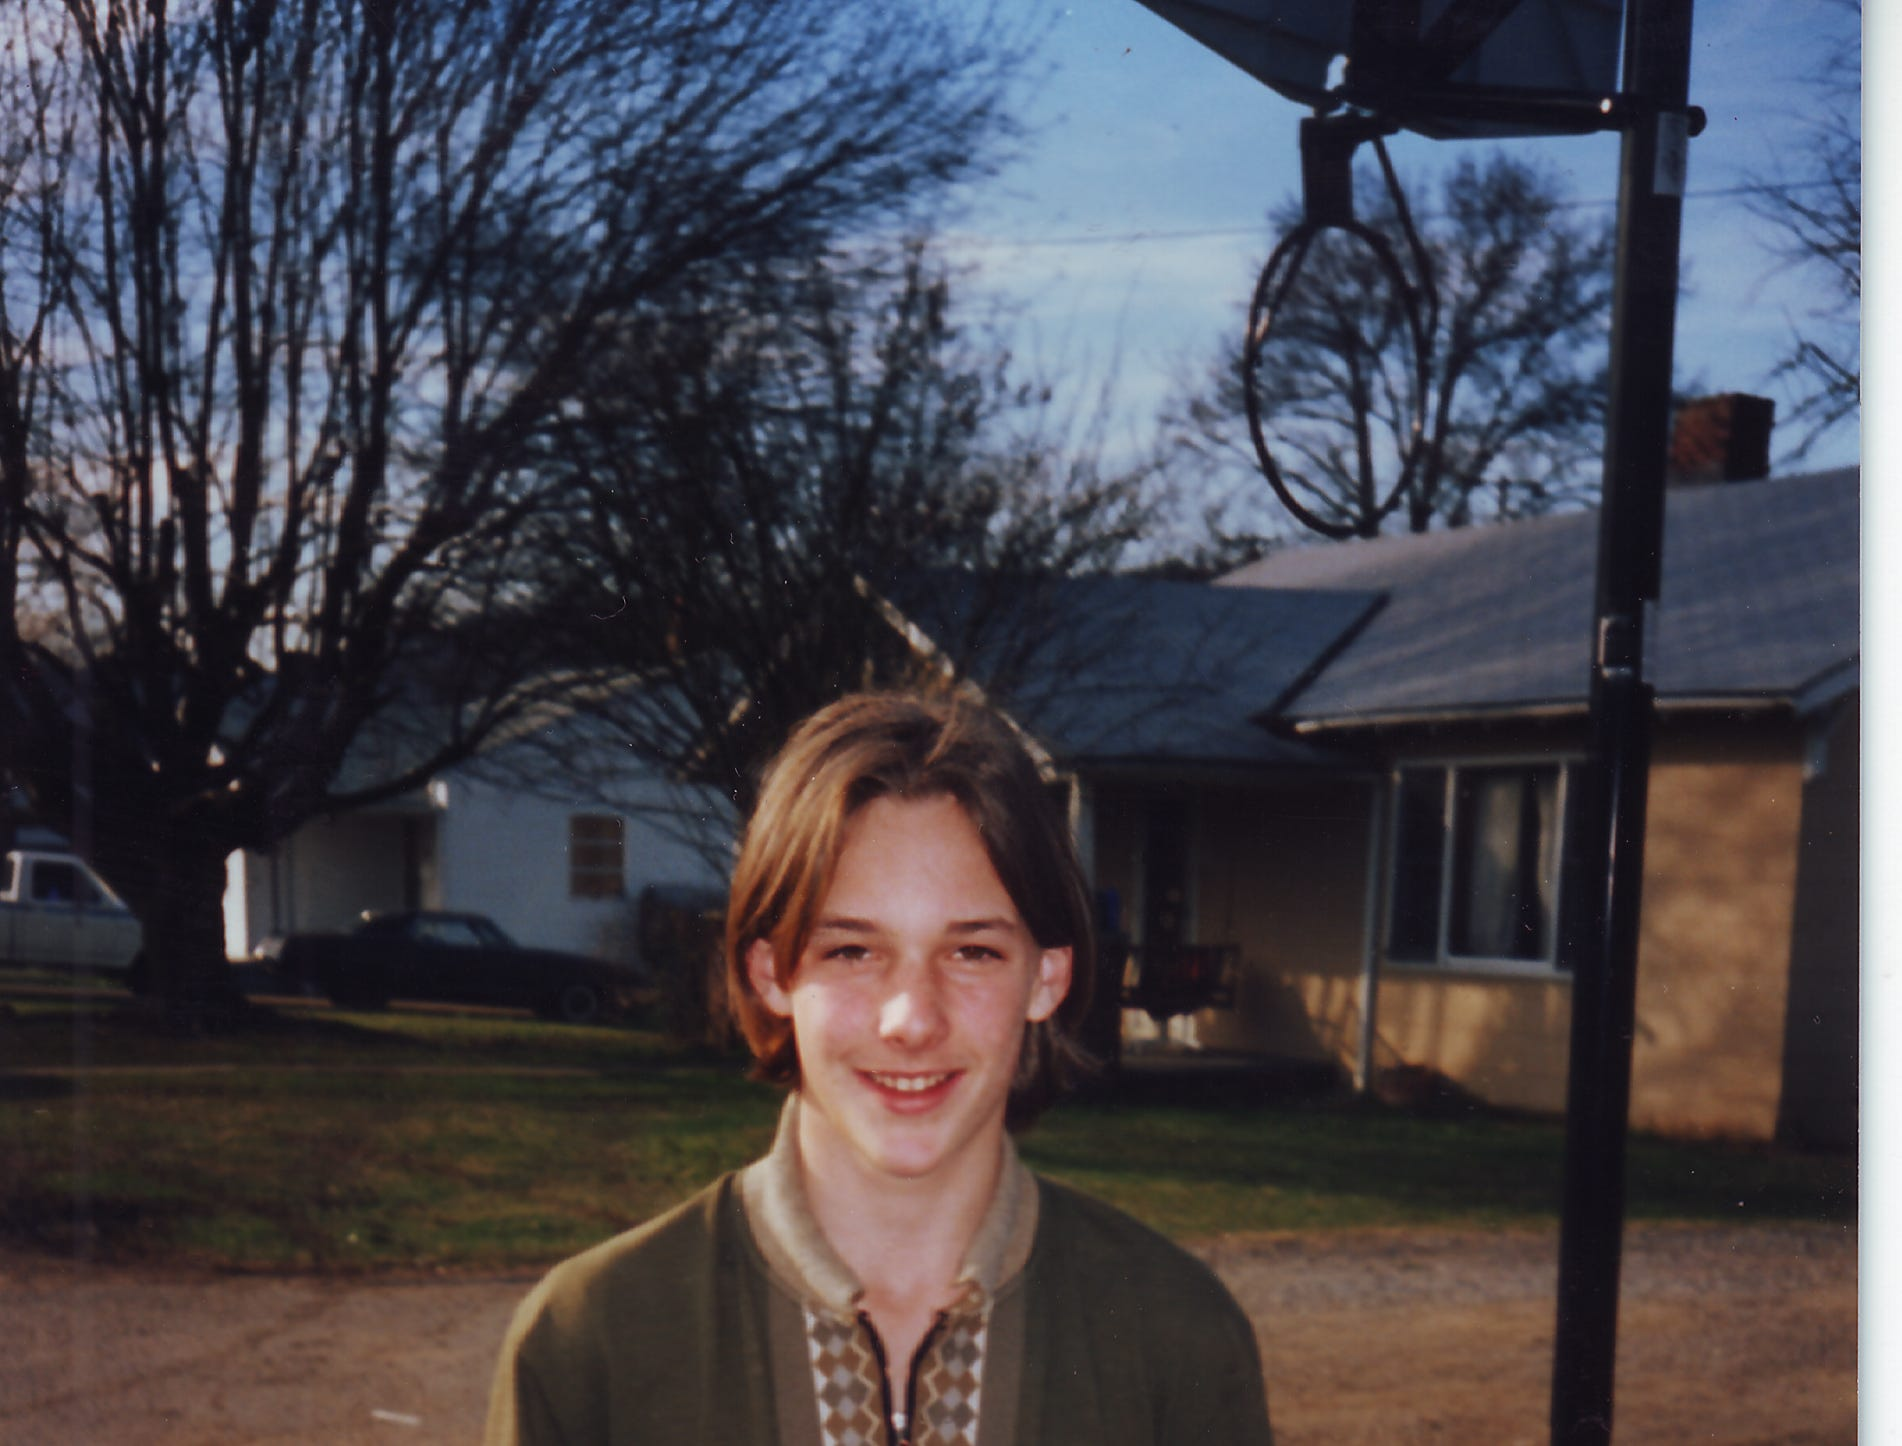 Even with one foot in Hollywood, Brad Renfro is still just a regular Knoxville kid in the front yard of his Lincoln Park home in an undated photo.